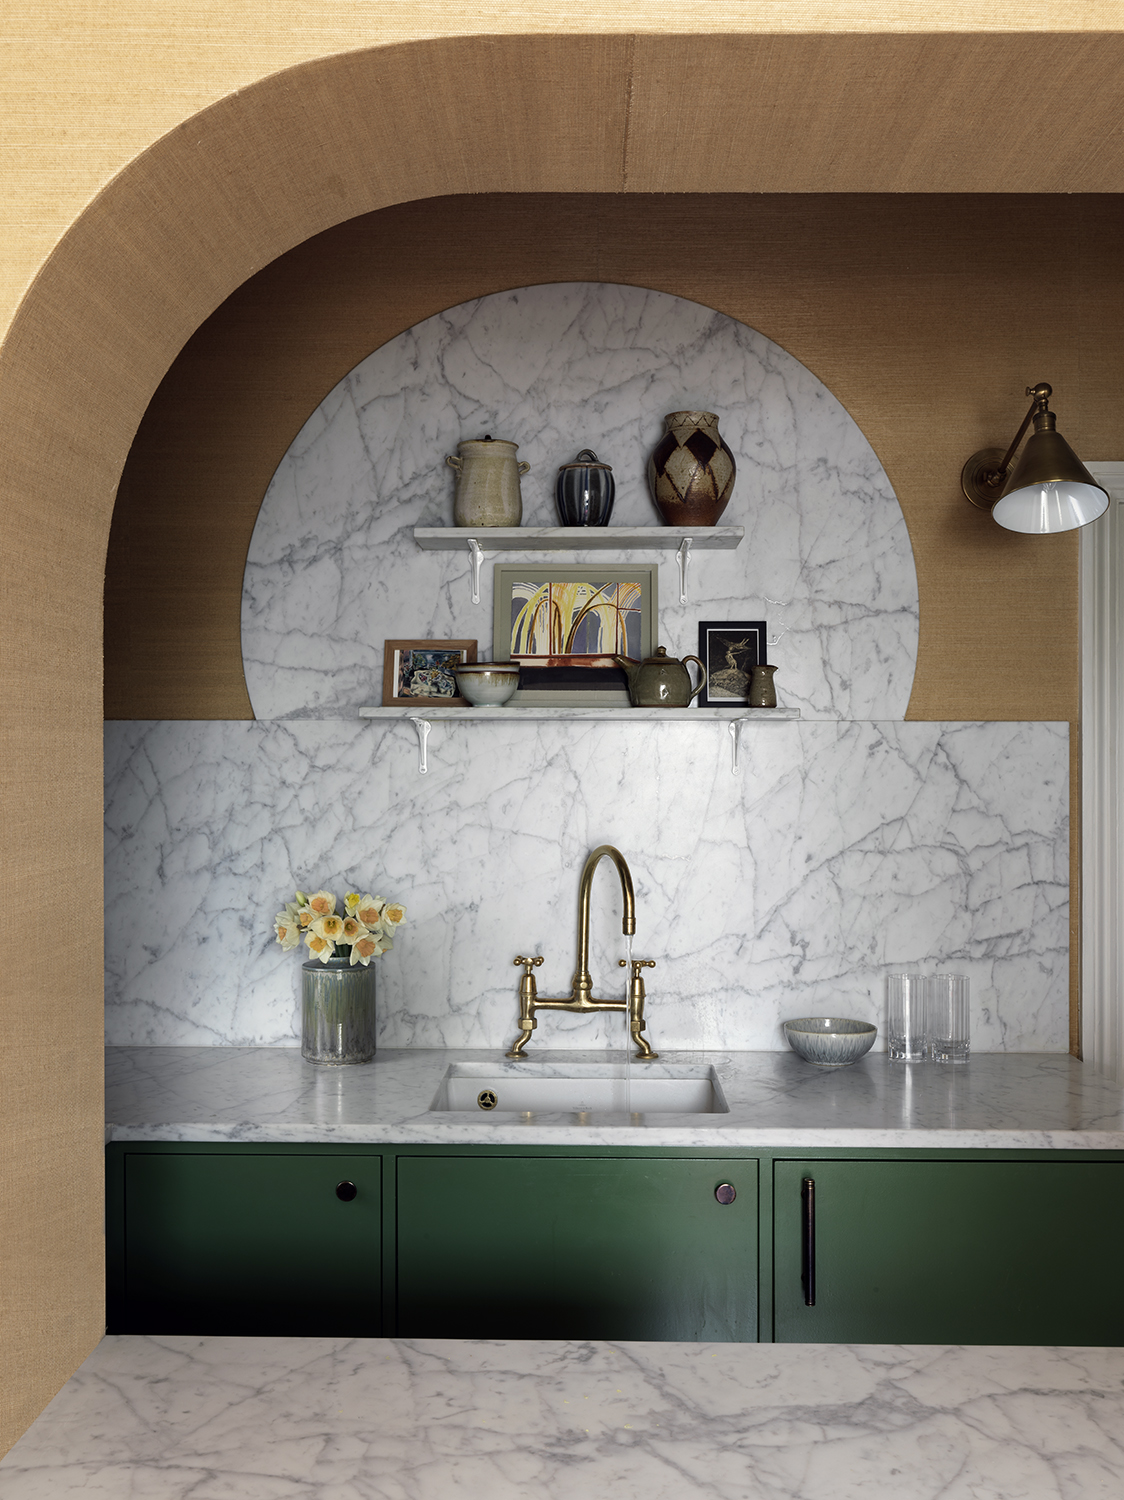 Curved walls in the kitchen by Beata Heuman Ltd.